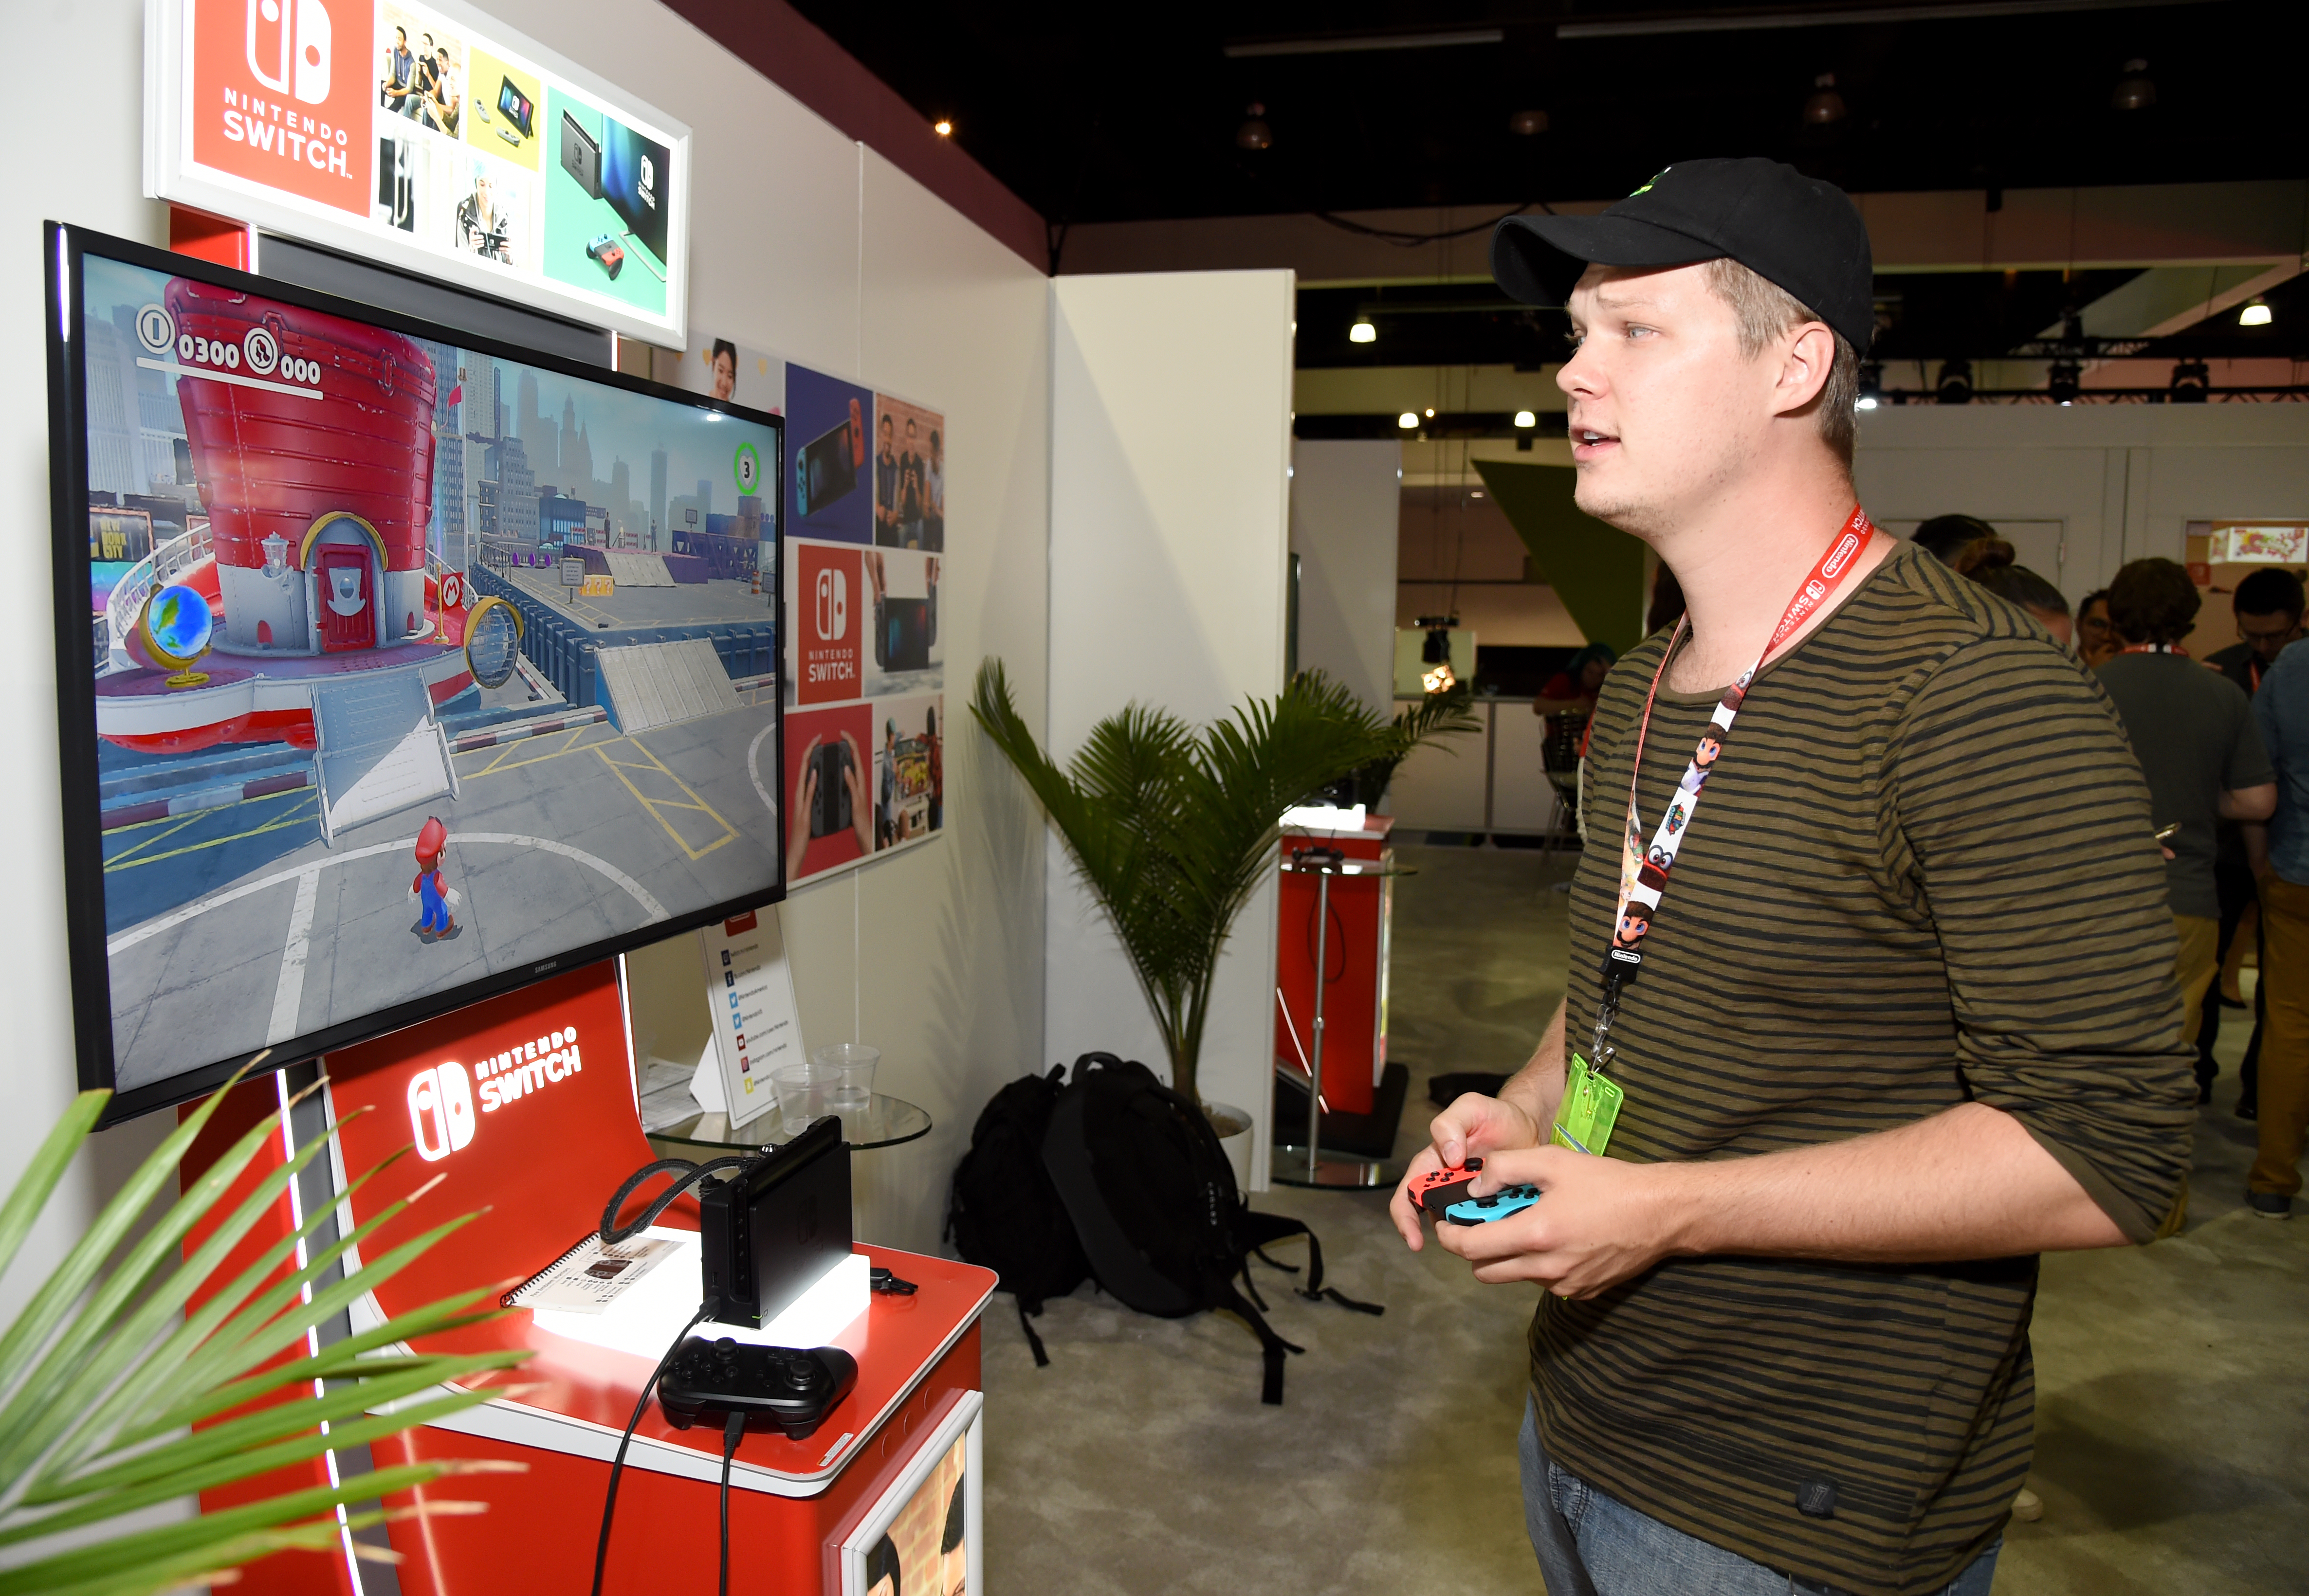 Nintendo Hosts Celebrities At 2017 E3 Gaming Convention